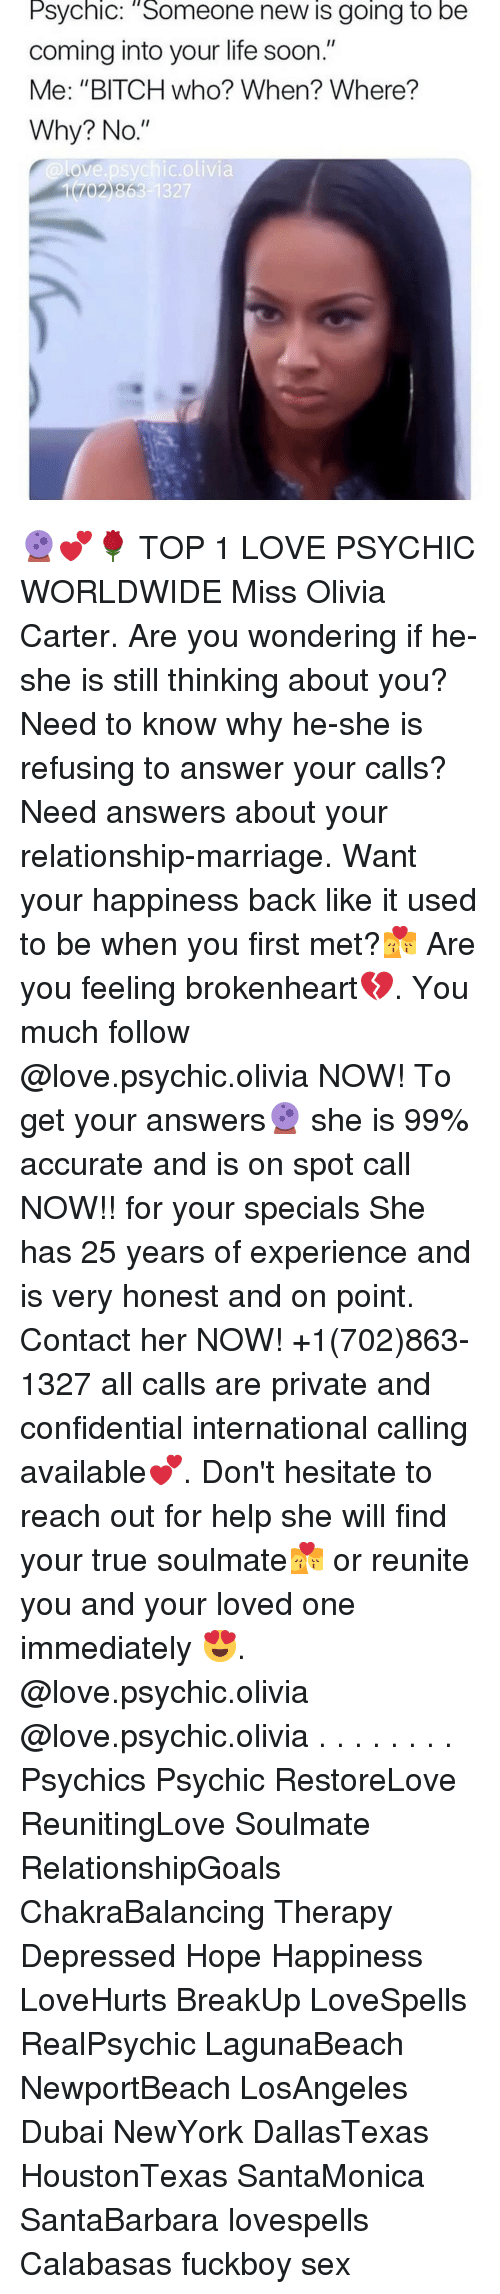 """brokenheart: Psychic: Someone new is going to be  coming into your life soon.""""  Me: """"BITCH who? When? Where?  Why? No.""""  @love.psychic.olivia 🔮💕🌹 TOP 1 LOVE PSYCHIC WORLDWIDE Miss Olivia Carter. Are you wondering if he-she is still thinking about you? Need to know why he-she is refusing to answer your calls? Need answers about your relationship-marriage. Want your happiness back like it used to be when you first met?💏 Are you feeling brokenheart💔. You much follow @love.psychic.olivia NOW! To get your answers🔮 she is 99% accurate and is on spot call NOW!! for your specials She has 25 years of experience and is very honest and on point. Contact her NOW! +1(702)863-1327 all calls are private and confidential international calling available💕. Don't hesitate to reach out for help she will find your true soulmate💏 or reunite you and your loved one immediately 😍. @love.psychic.olivia @love.psychic.olivia . . . . . . . . Psychics Psychic RestoreLove ReunitingLove Soulmate RelationshipGoals ChakraBalancing Therapy Depressed Hope Happiness LoveHurts BreakUp LoveSpells RealPsychic LagunaBeach NewportBeach LosAngeles Dubai NewYork DallasTexas HoustonTexas SantaMonica SantaBarbara lovespells Calabasas fuckboy sex"""